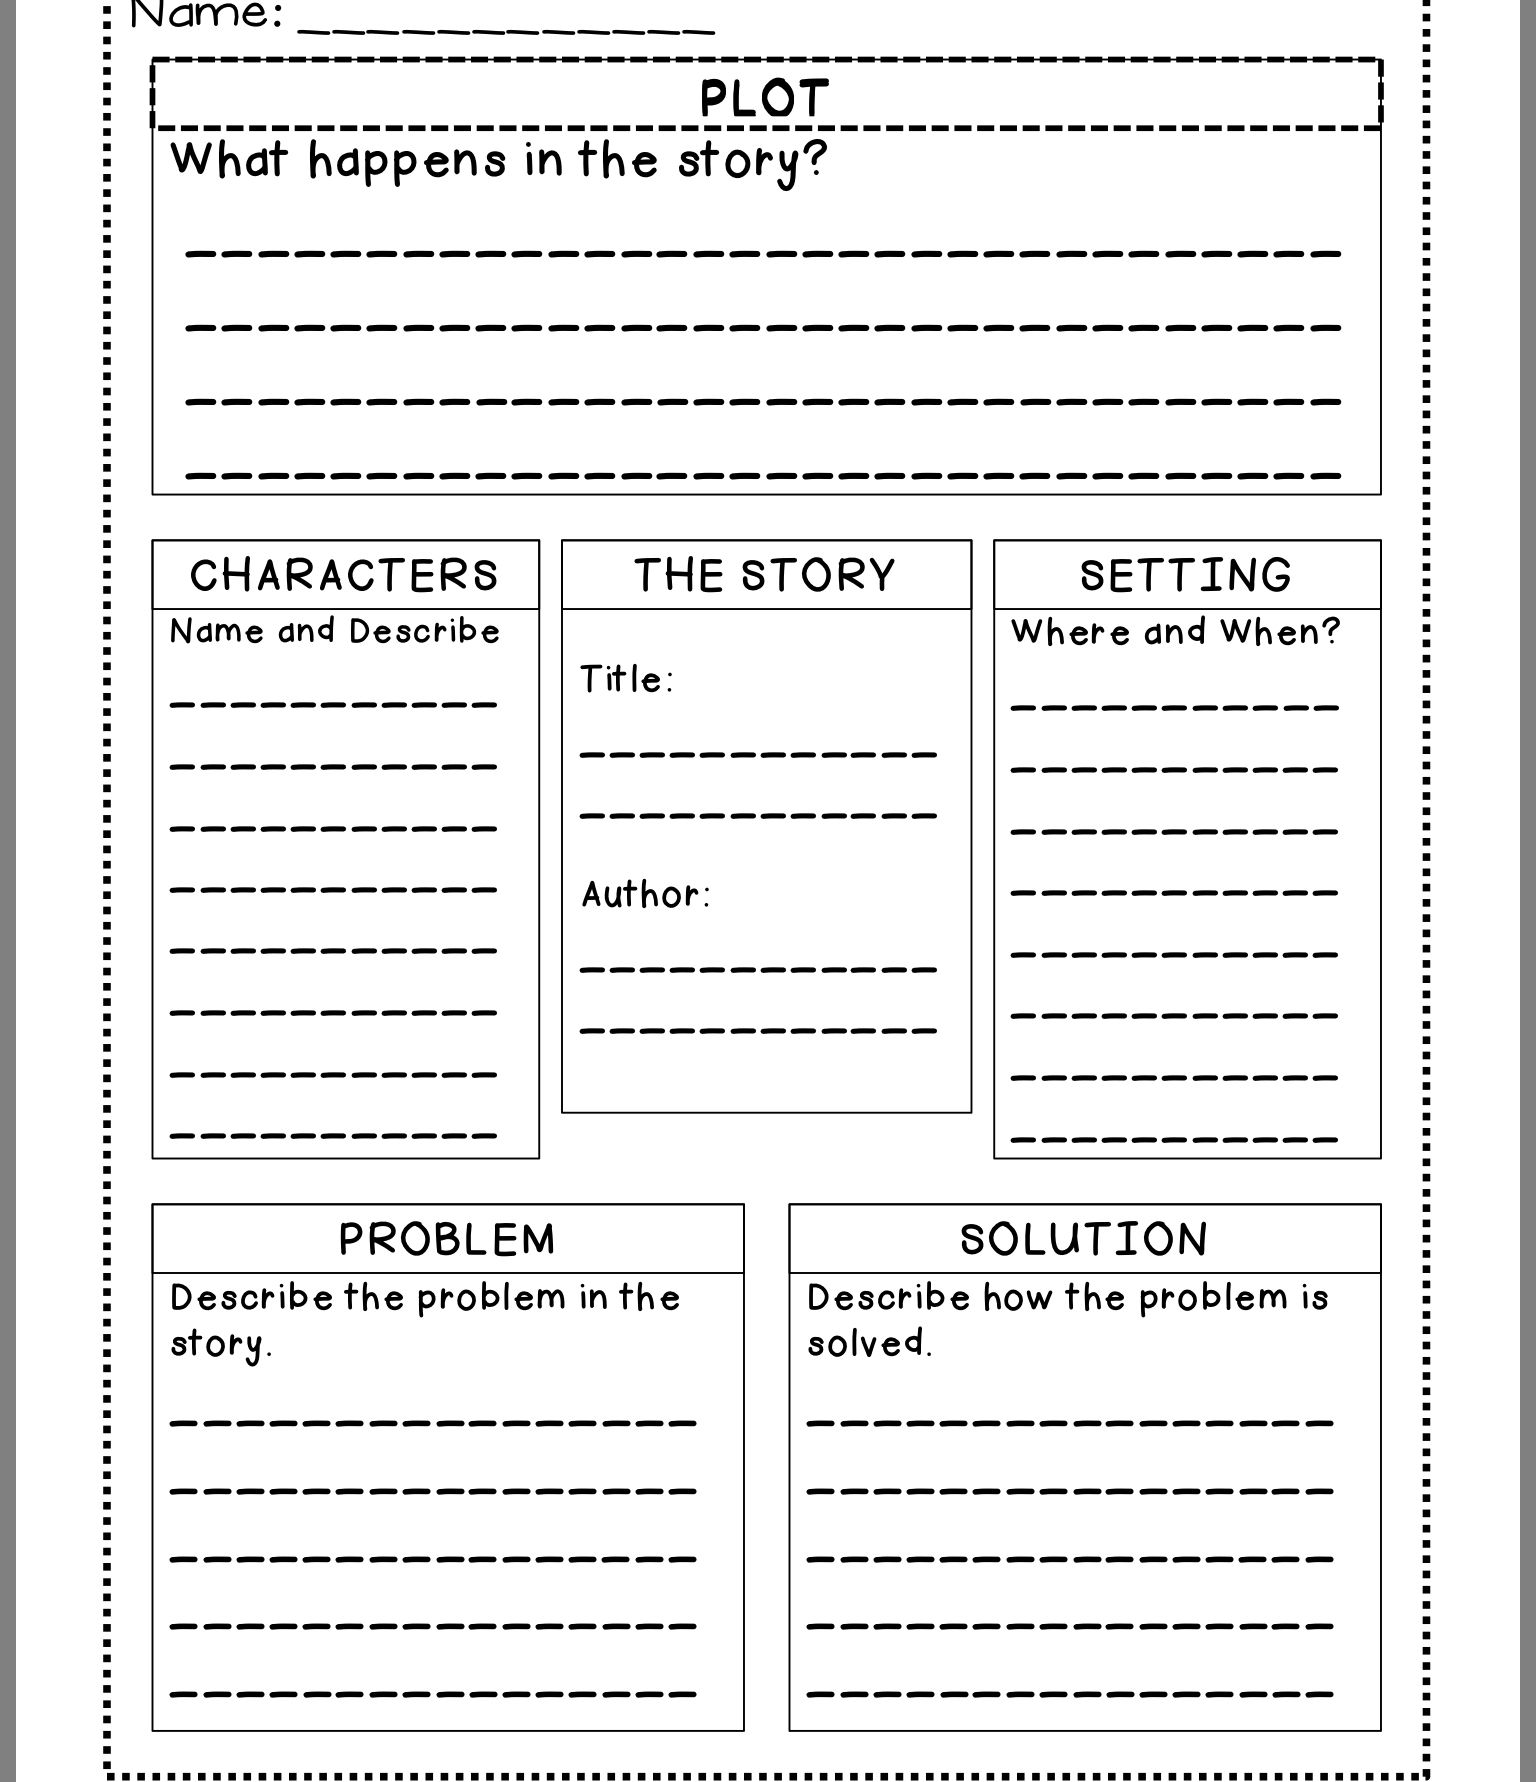 Pin By Lisa Greco Recek On School Story Elements Worksheet Story Elements Thinking Map